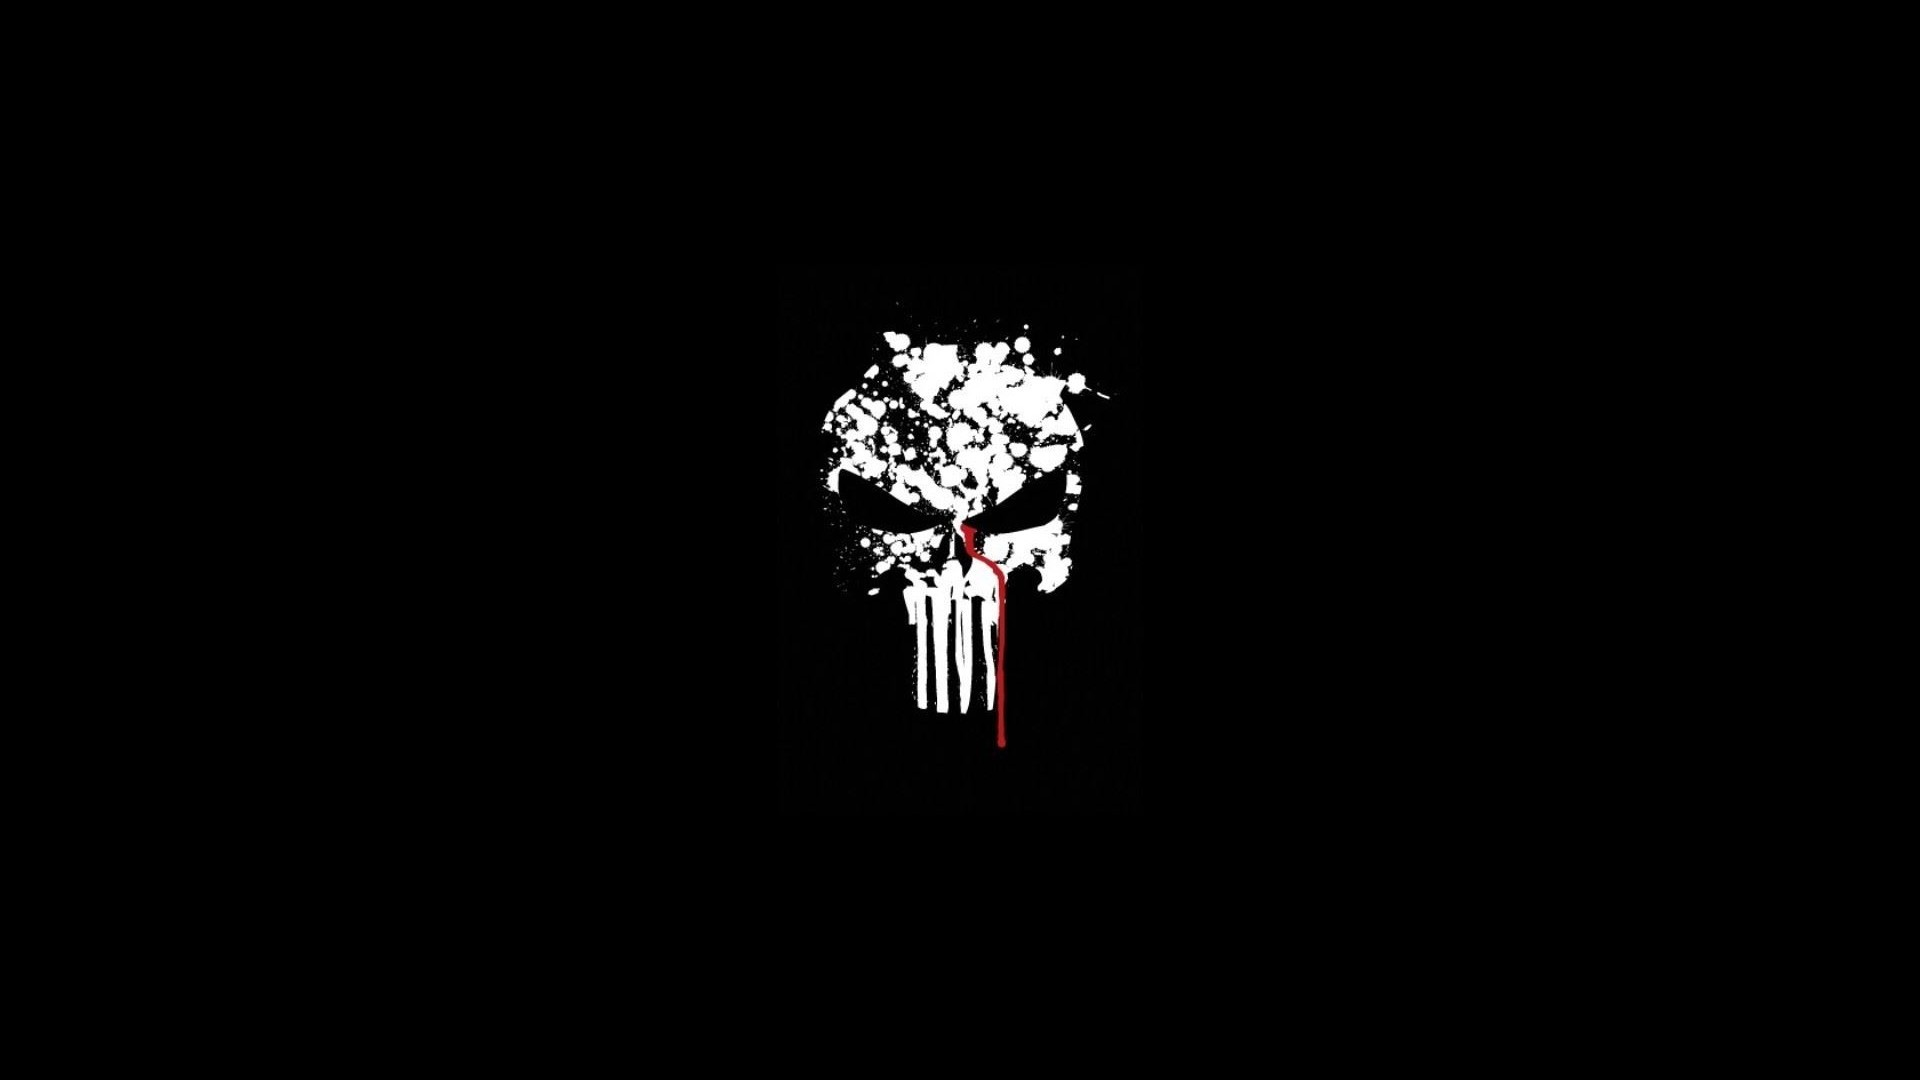 1920x1080 Punisher Skull Images | Crazy Gallery